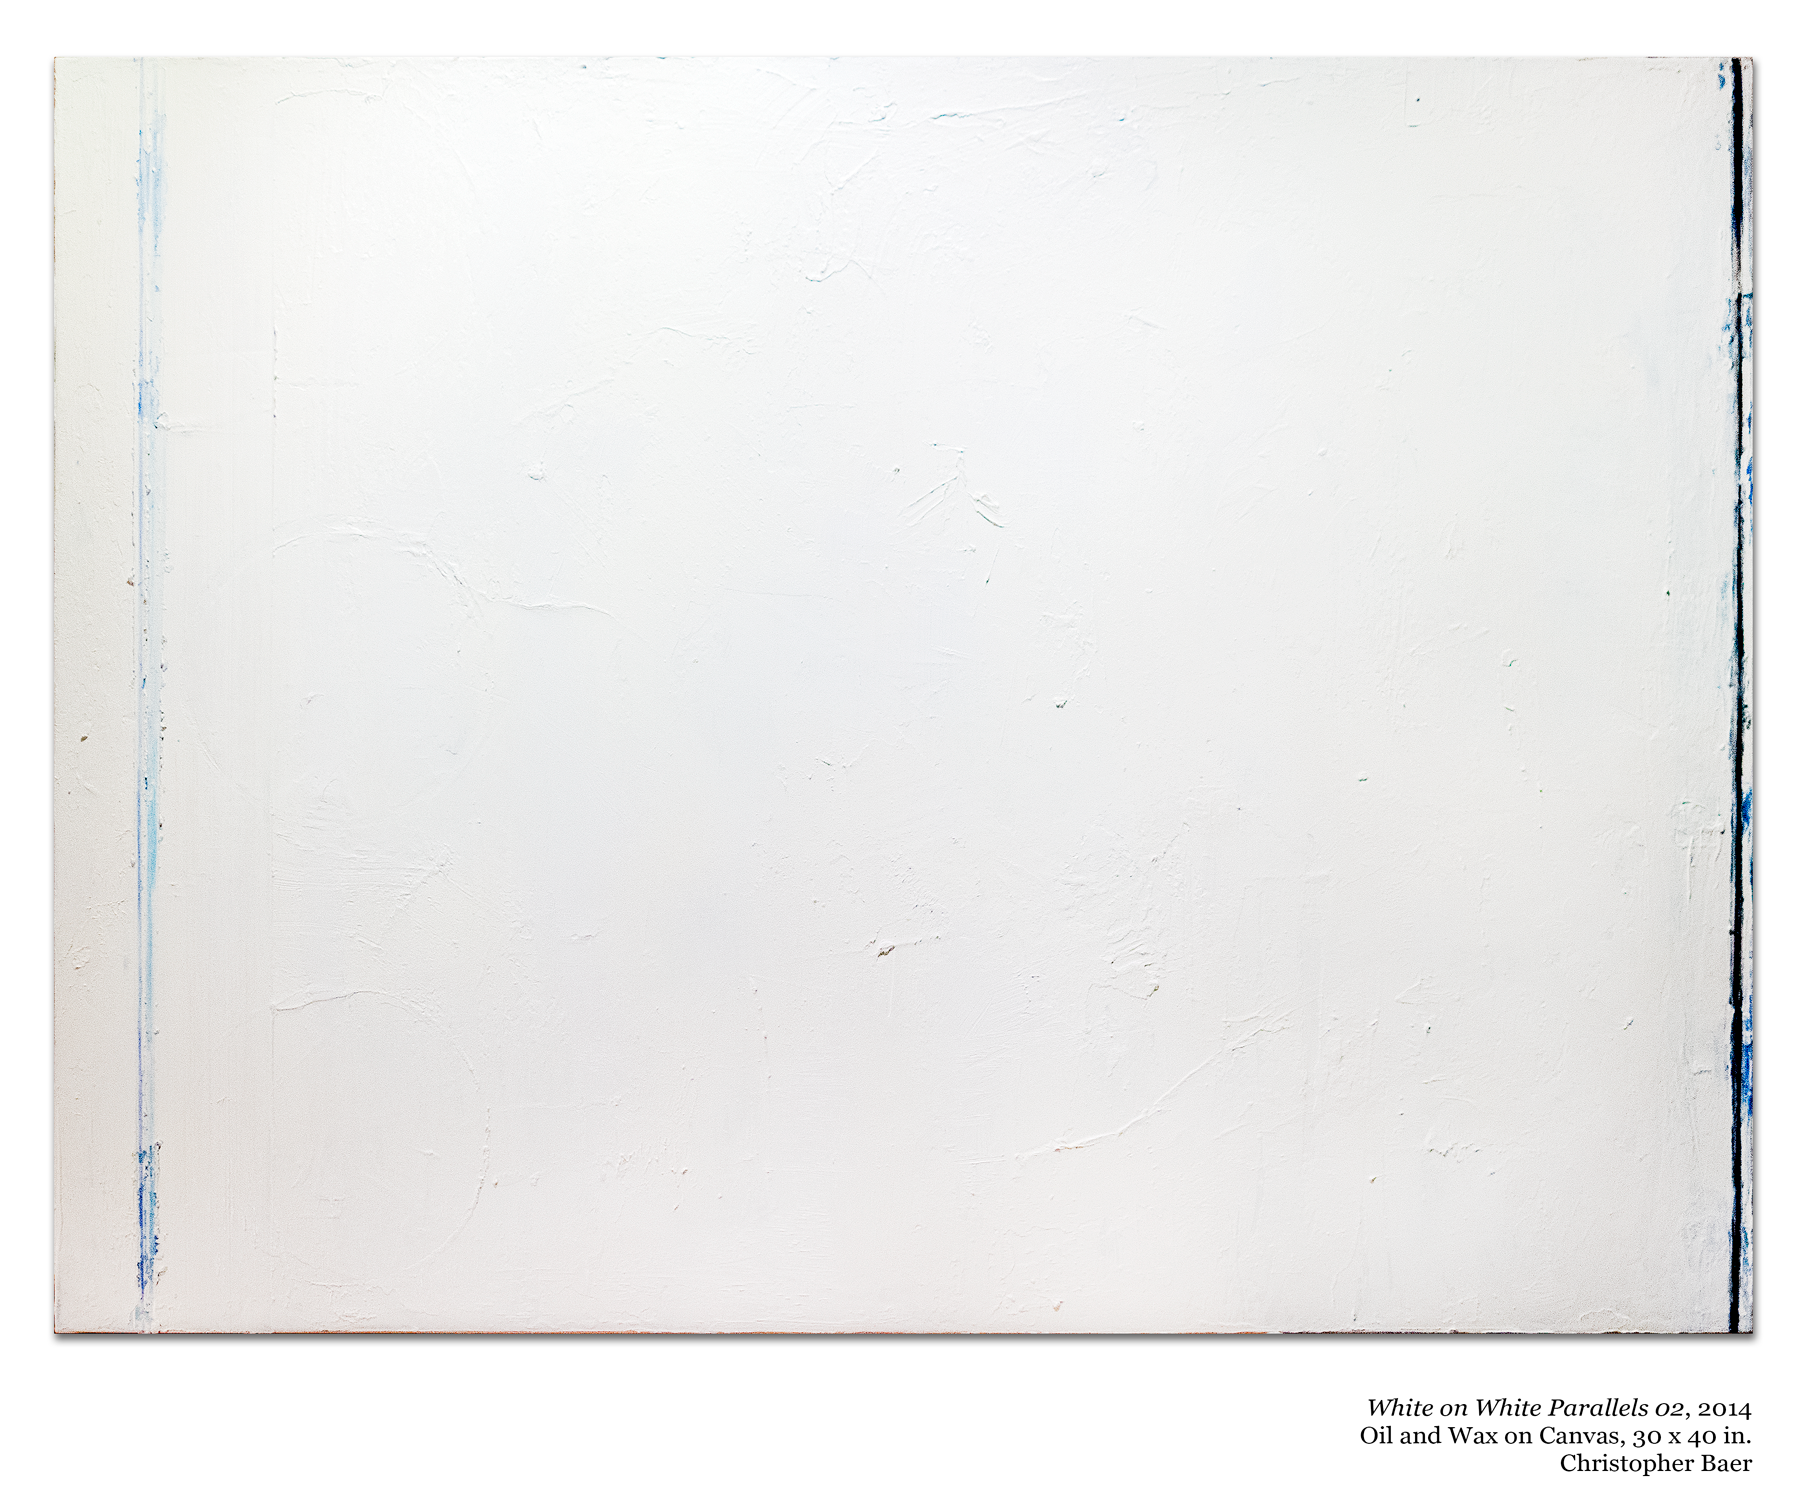 020.White-on-White-Parallels-02-30x40-2014.png